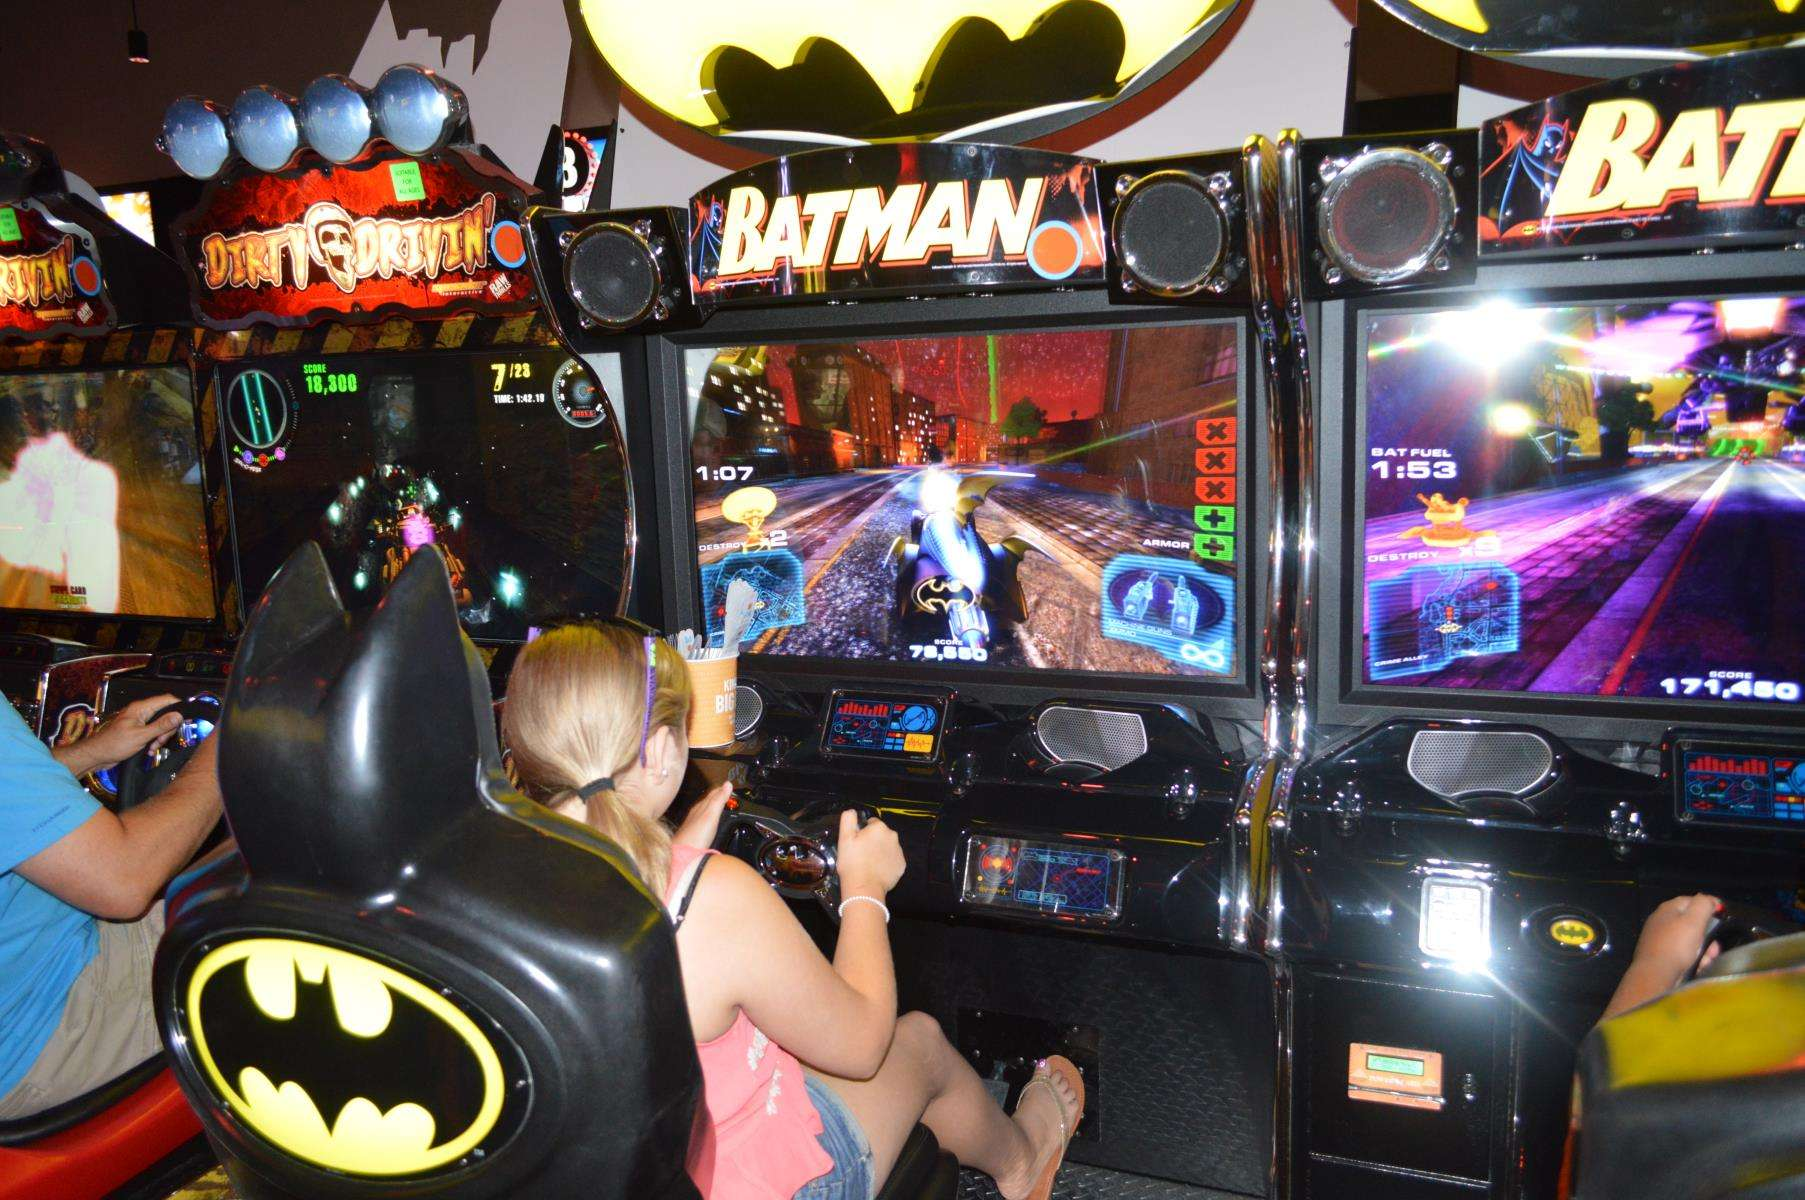 Only at Dave & Buster's! Dave & Buster's is the perfect location for kids' birthday parties, corporate events, school fundraisers, and more especially when you save with Dave & Buster's coupons.